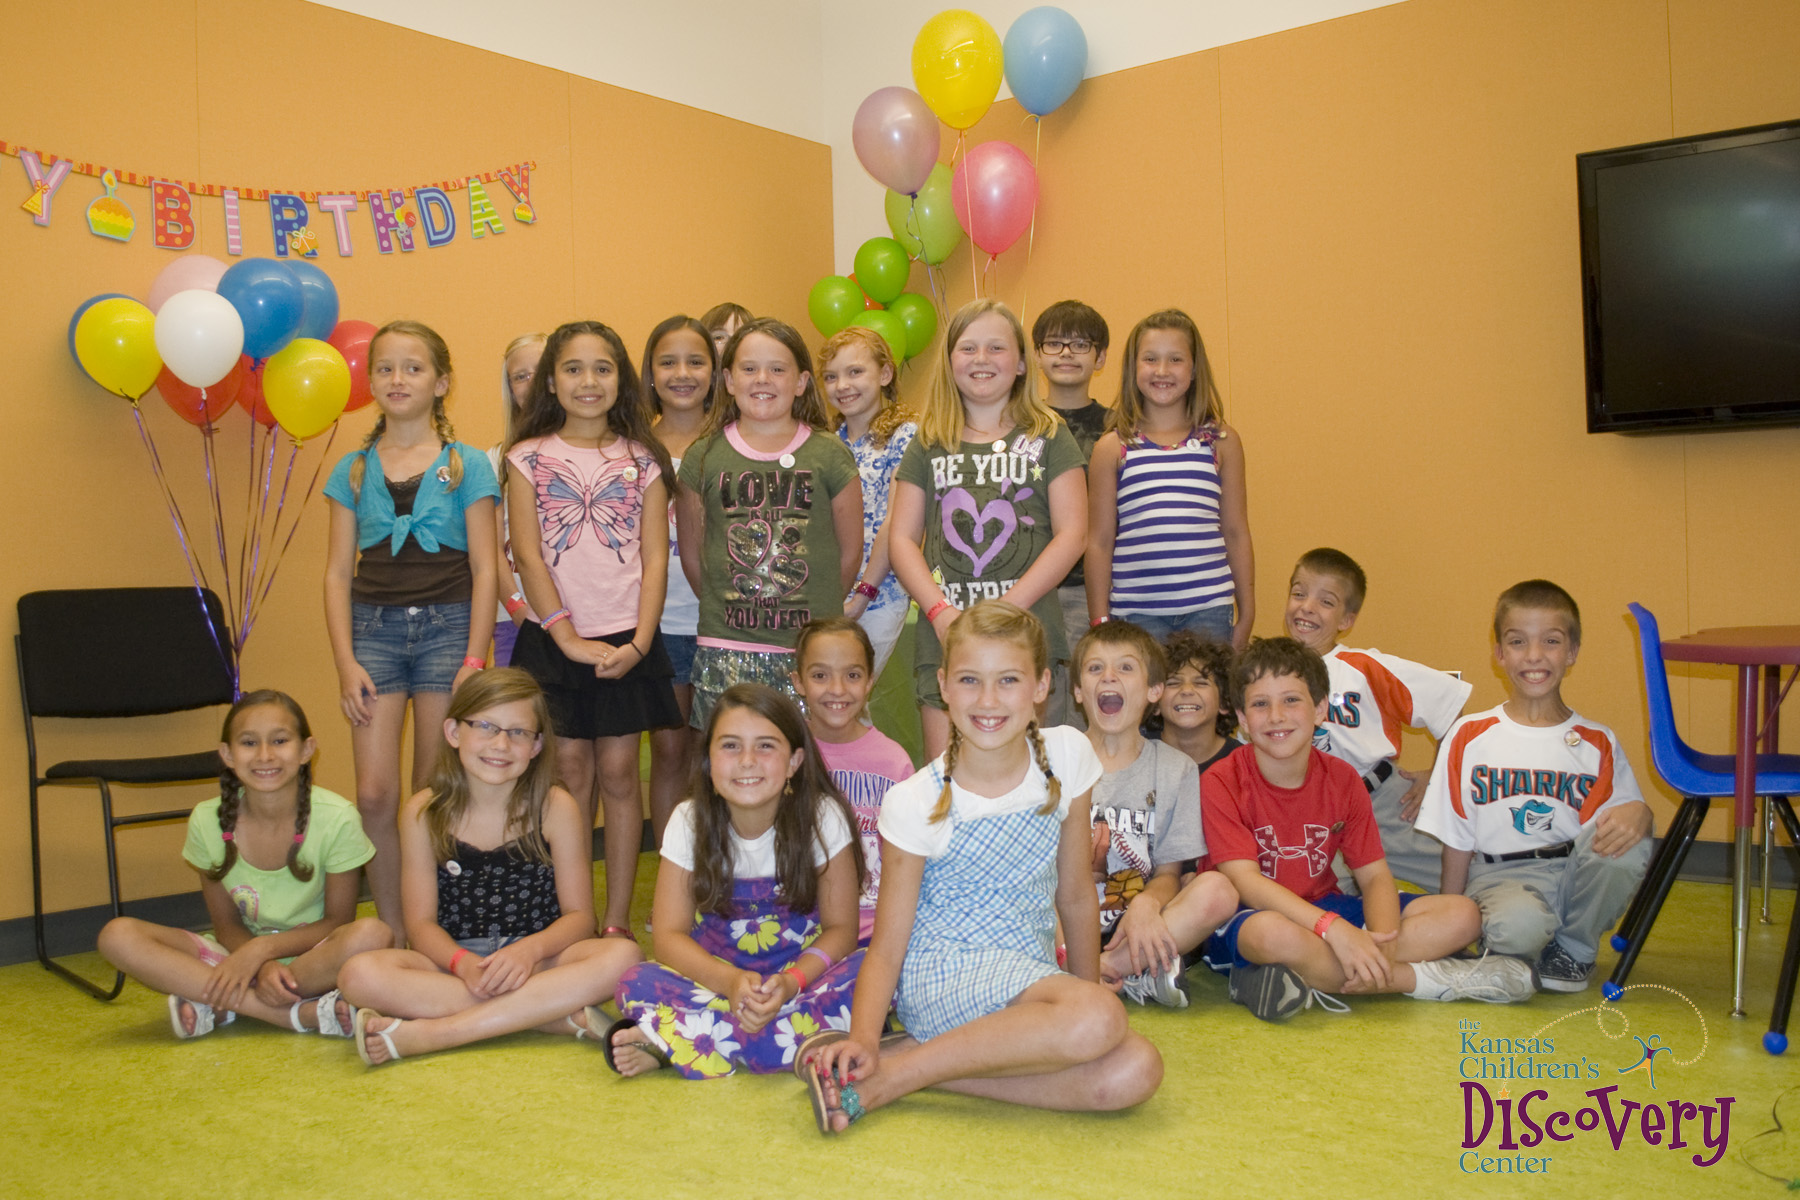 birthday parties kansas children s discovery center. Black Bedroom Furniture Sets. Home Design Ideas